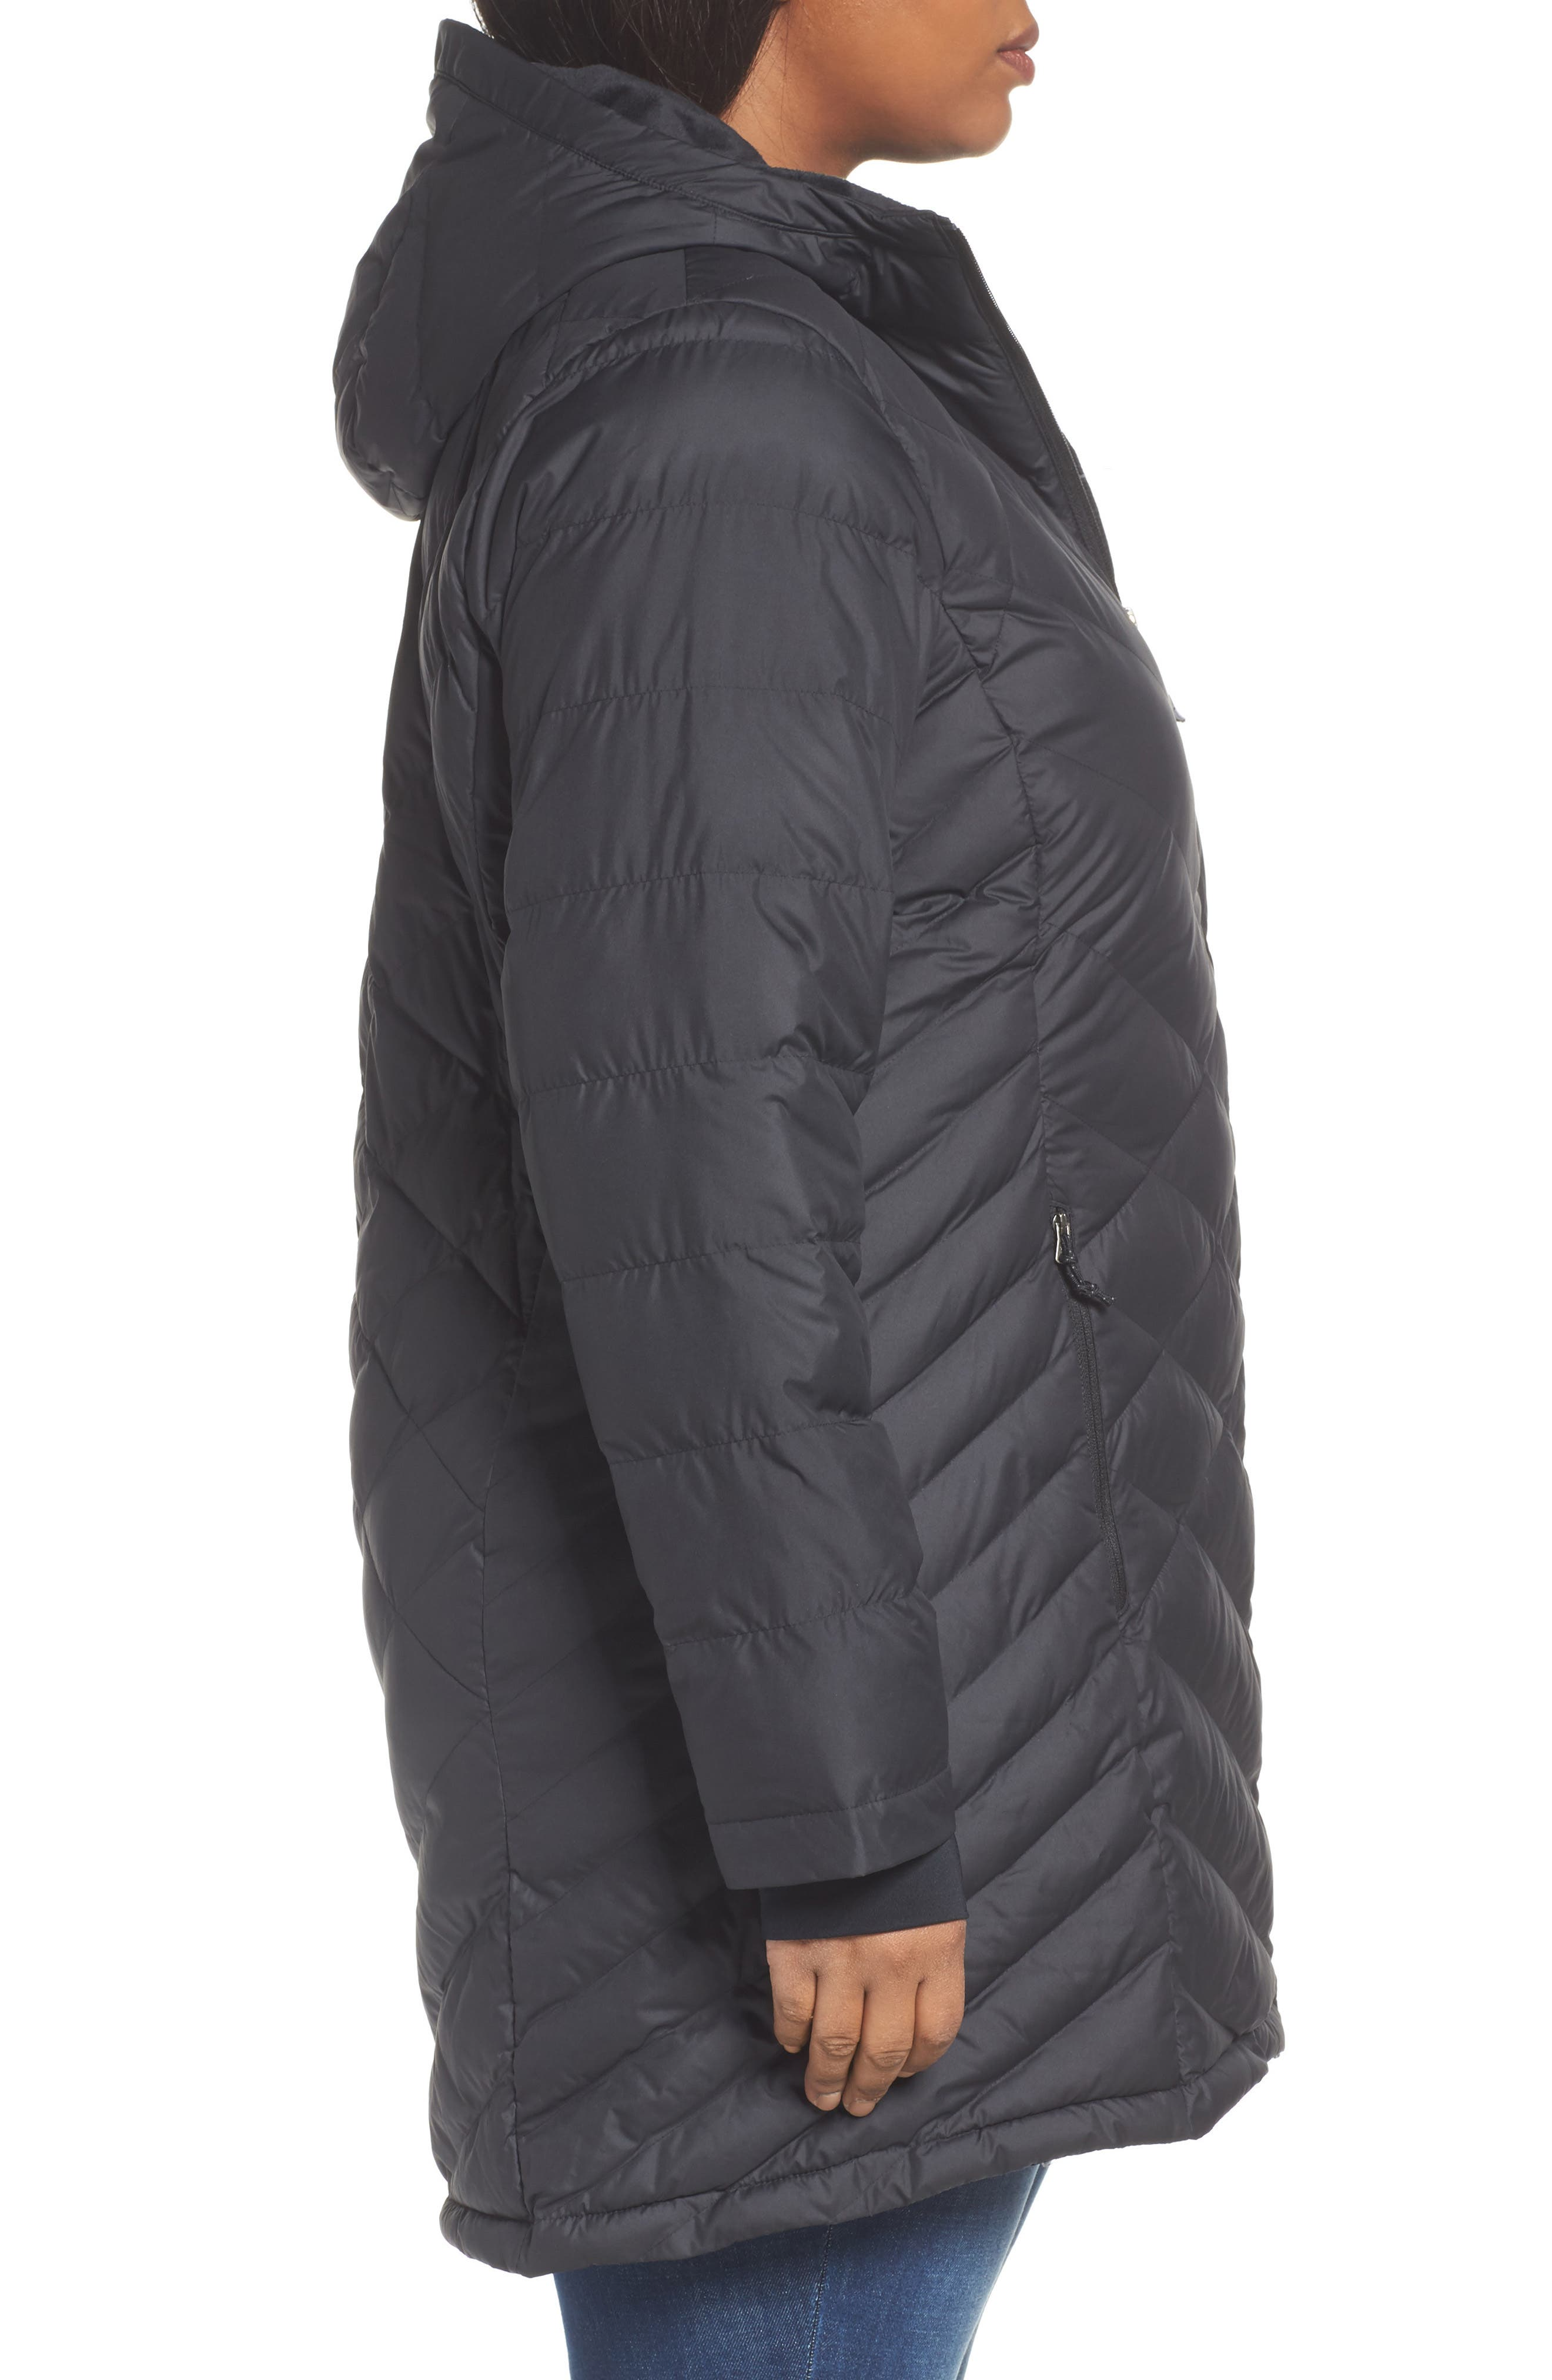 Heavenly Water Resistant Insulated Long Hooded Jacket,                             Alternate thumbnail 3, color,                             010